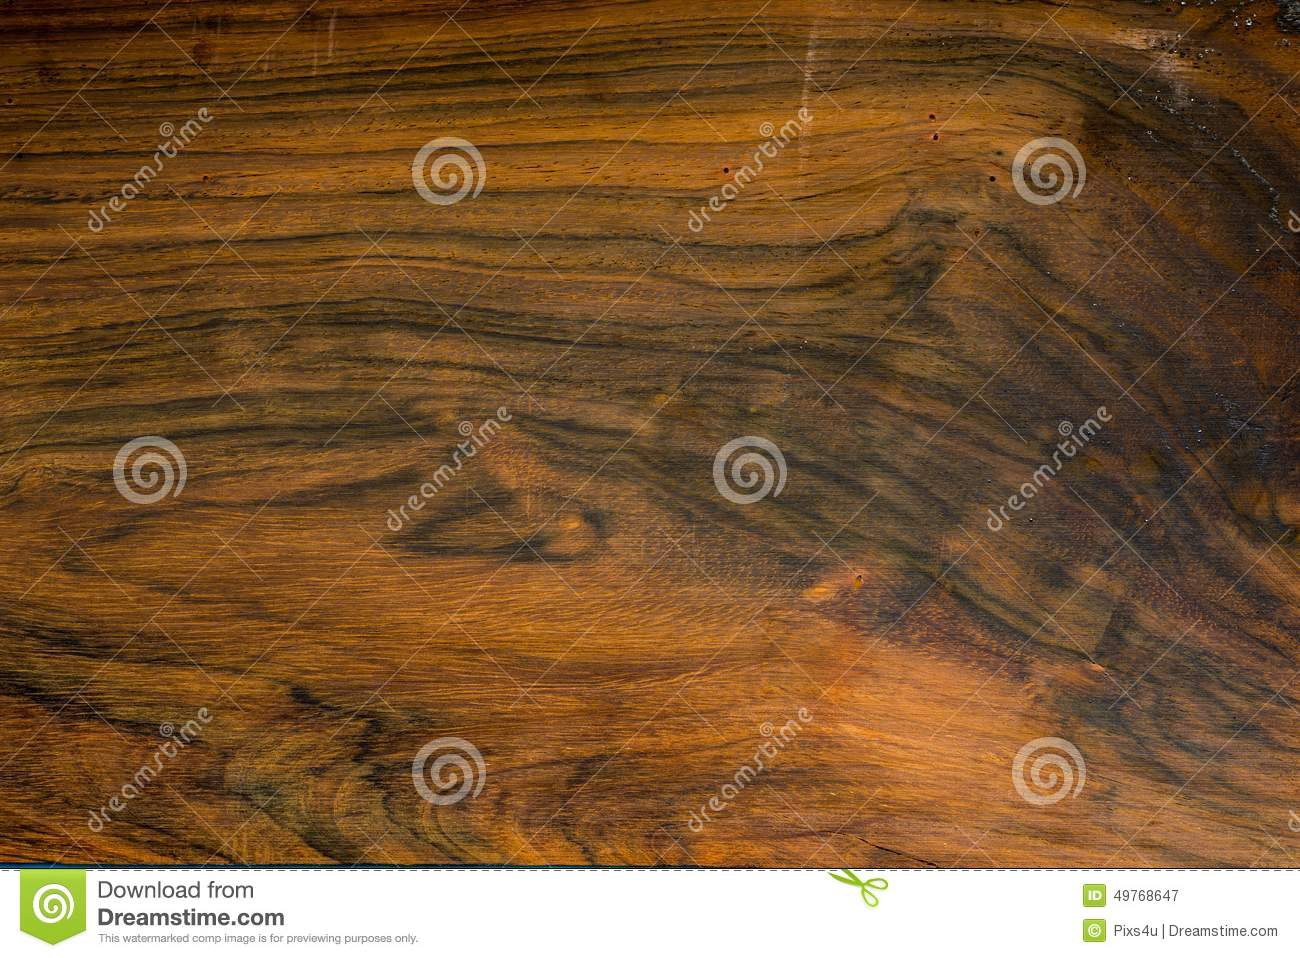 Jpg Texture Background Free Stock Photos Download 105 545: Texture Of Brazilian Rosewood, Used As Background Stock